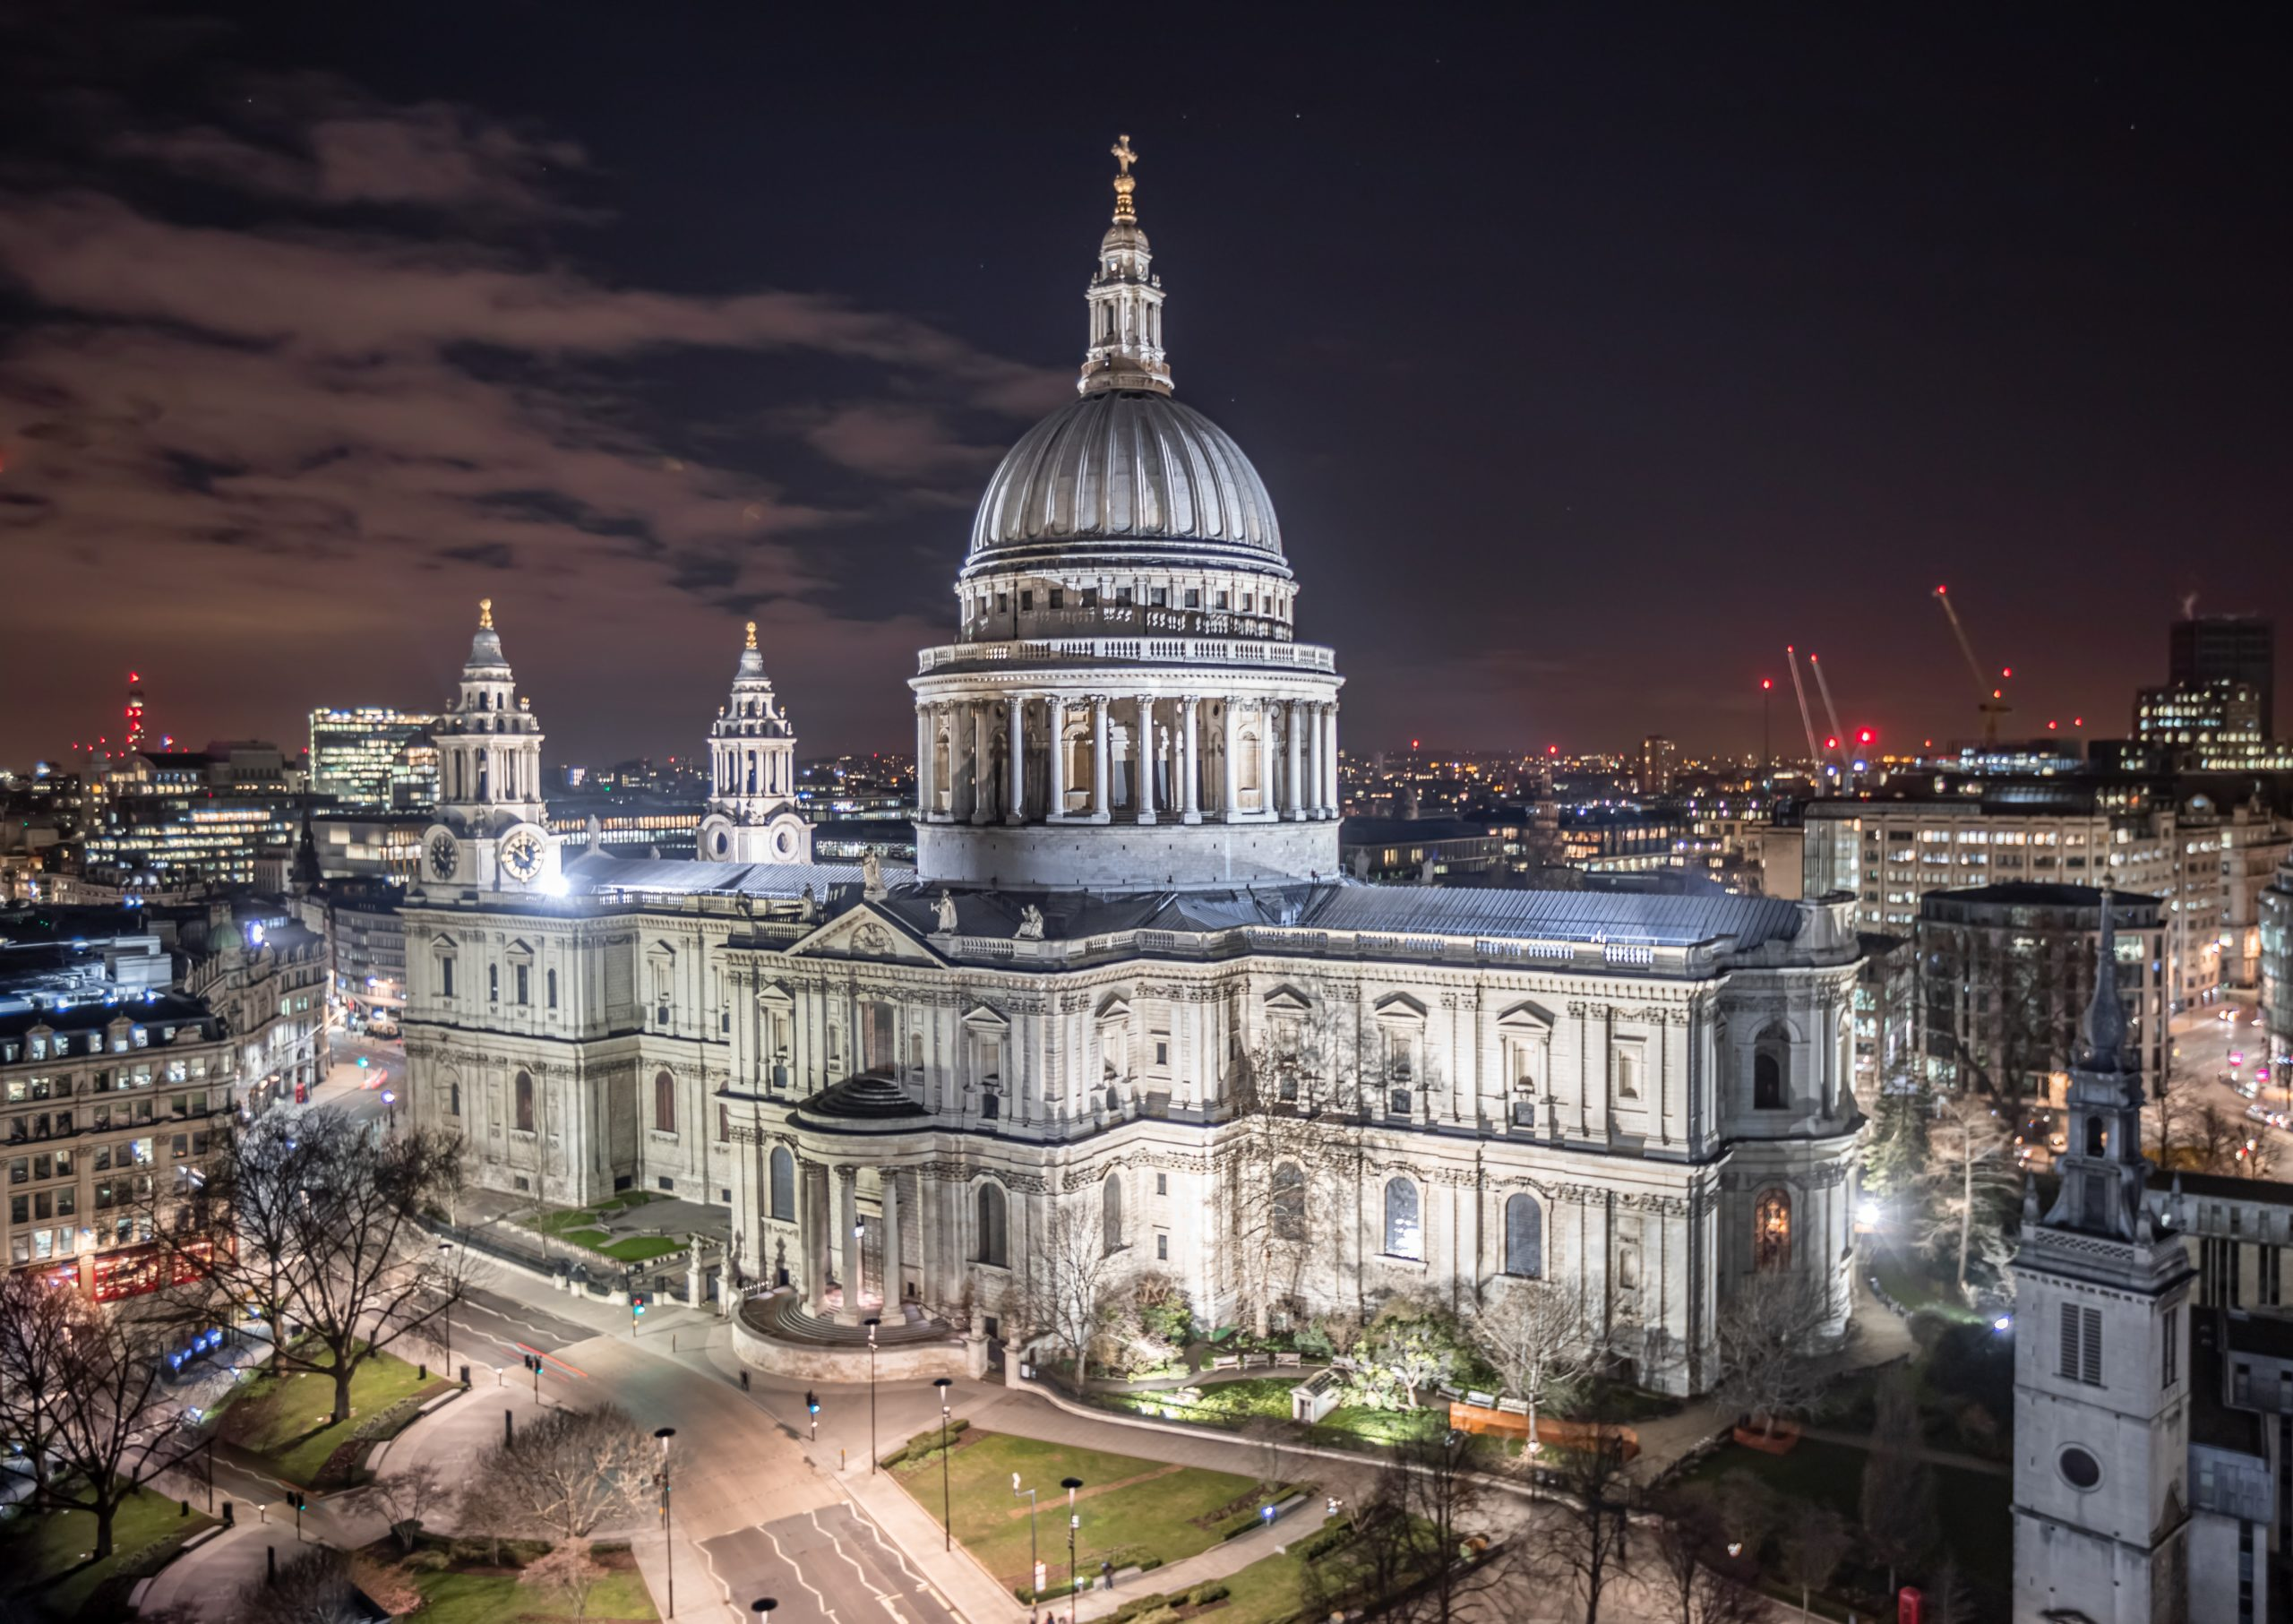 Amazing St Paul's Cathedral